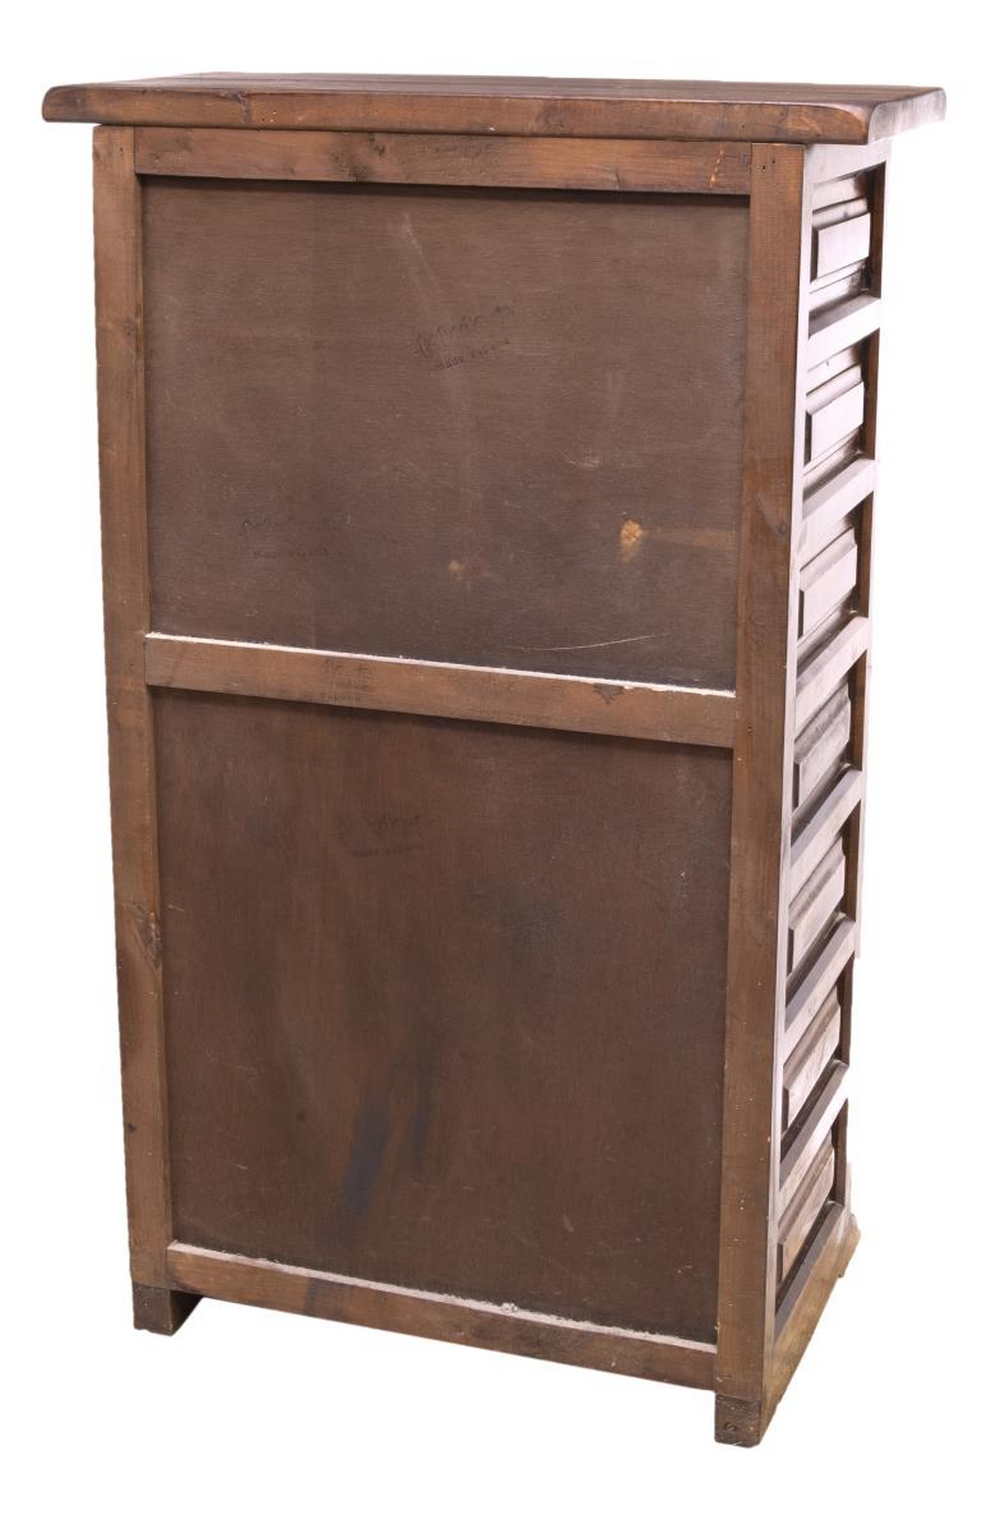 Lot 586: VINTAGE SPANISH BACHELORS CHEST, 20TH C.